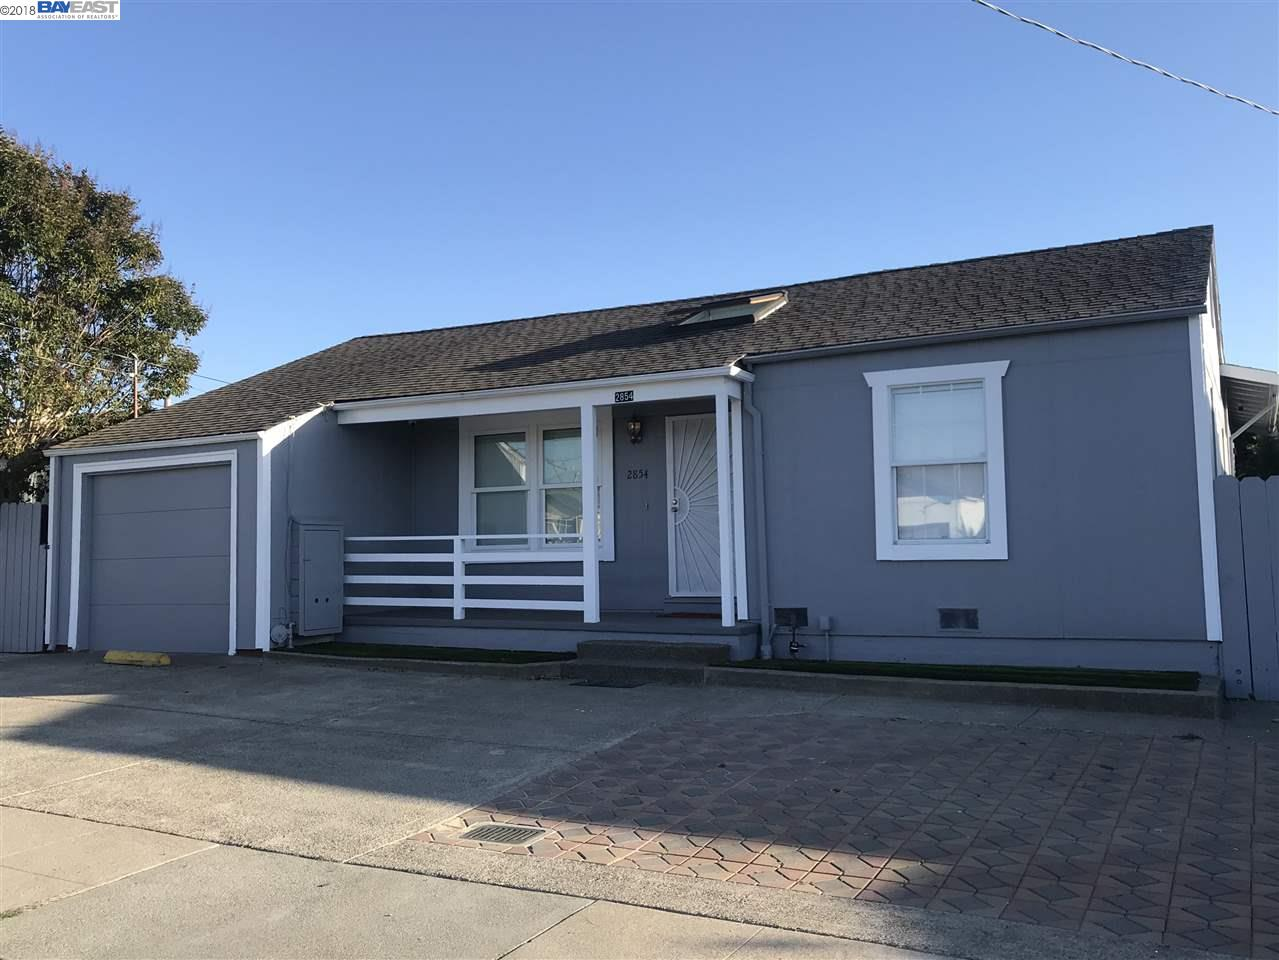 2854 MCBRYDE AVE, RICHMOND, CA 94804